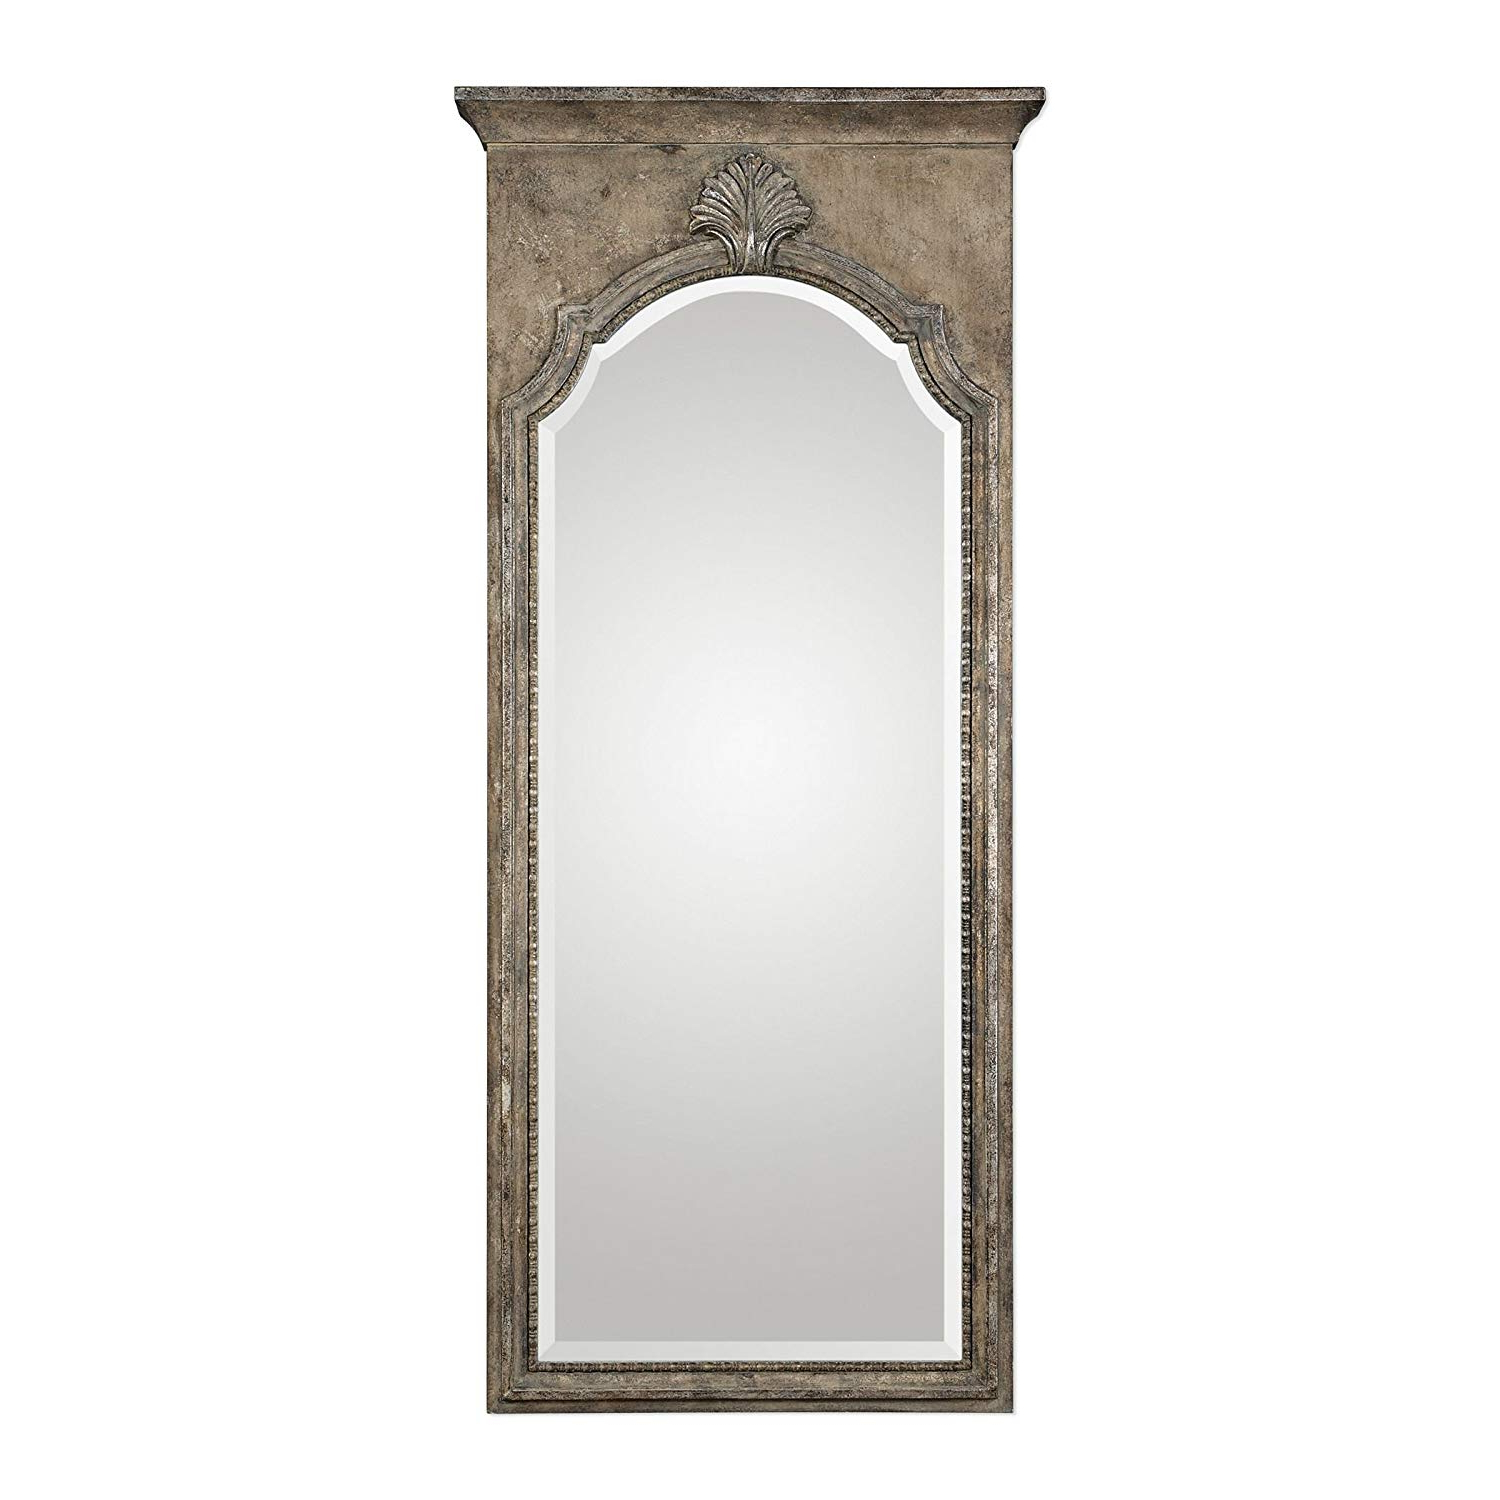 """Best And Newest Ornate Full Length Wall Mirrors Pertaining To Amazon: My Swanky Home Solid Wood 73"""" Full Length Wall (View 1 of 20)"""